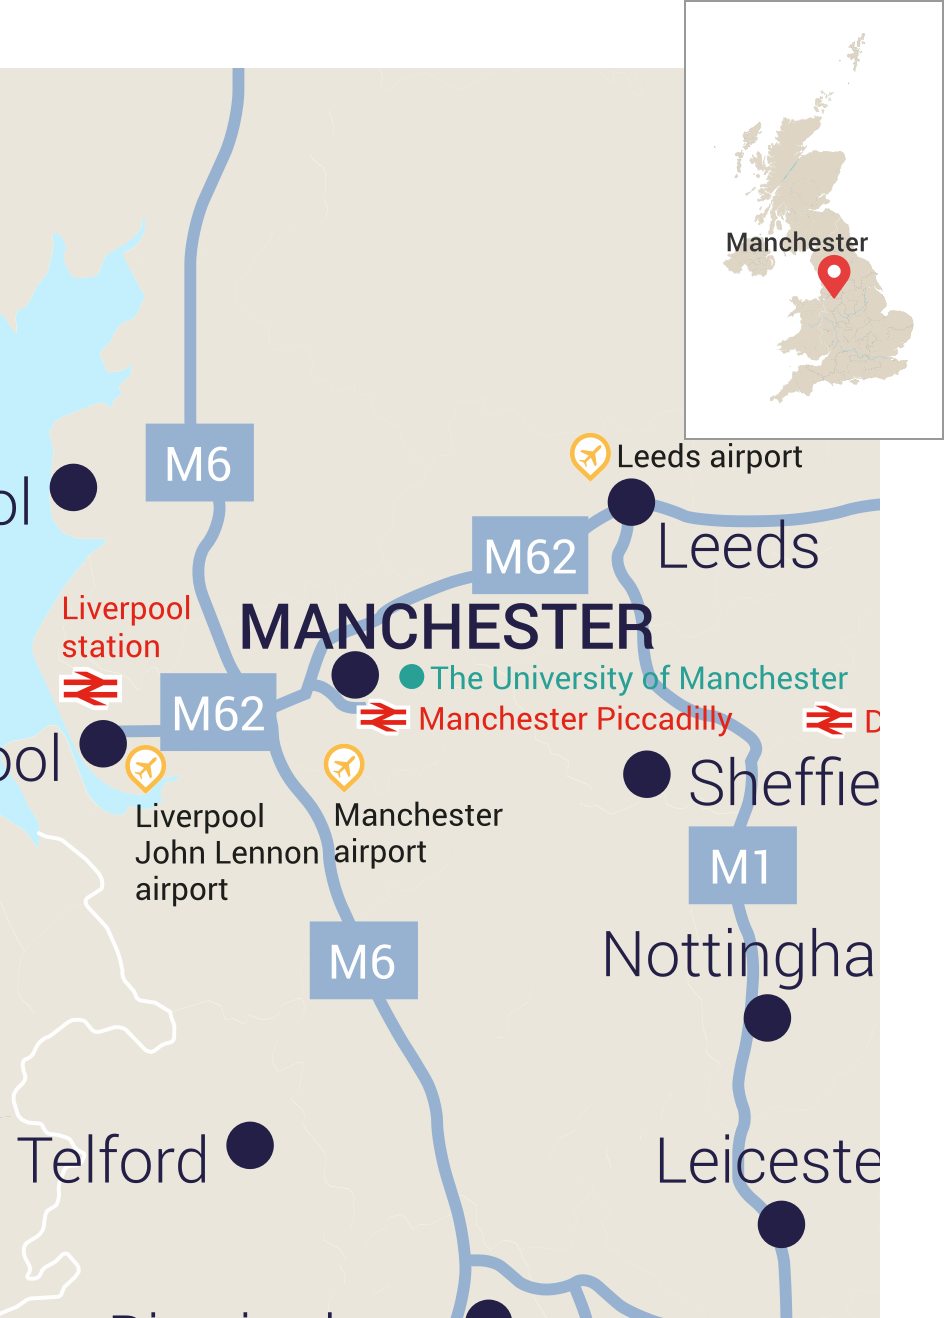 Map of Northern England with Manchester and its main transport links